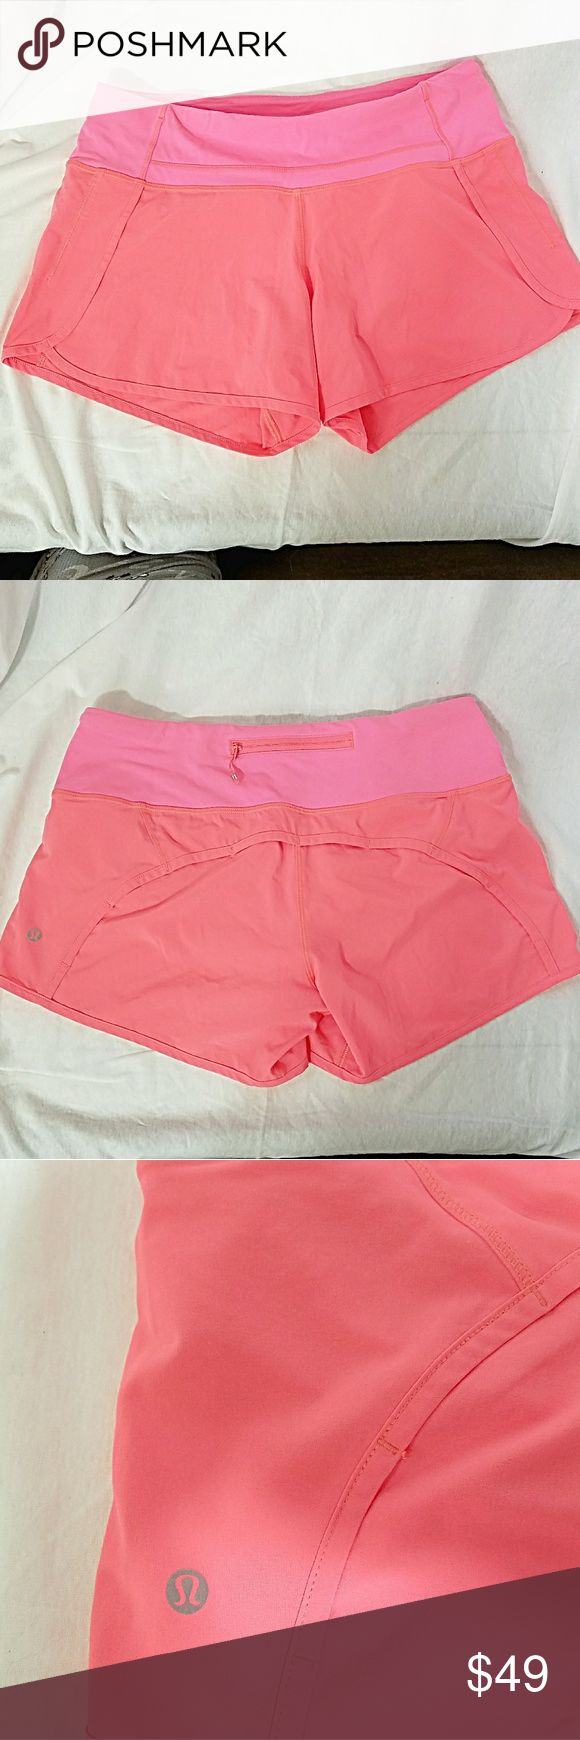 "LULULEMON *nwot Sz6 Neon Coral Pink Running Shorts Brand: Lululemon Athletica  Item: * Neon Coral Pink Running Shorts * There are 2 Small Pockets at the Waist for a Key, Cash, etc *1 Zippered Small Pocket on the Back of the Shorts - this is Where the Size Circle is Located *Waist Measures 15.5"" Flat *NWOT, New Without Tags  *no trades, offers via offer button only* lululemon athletica Shorts"